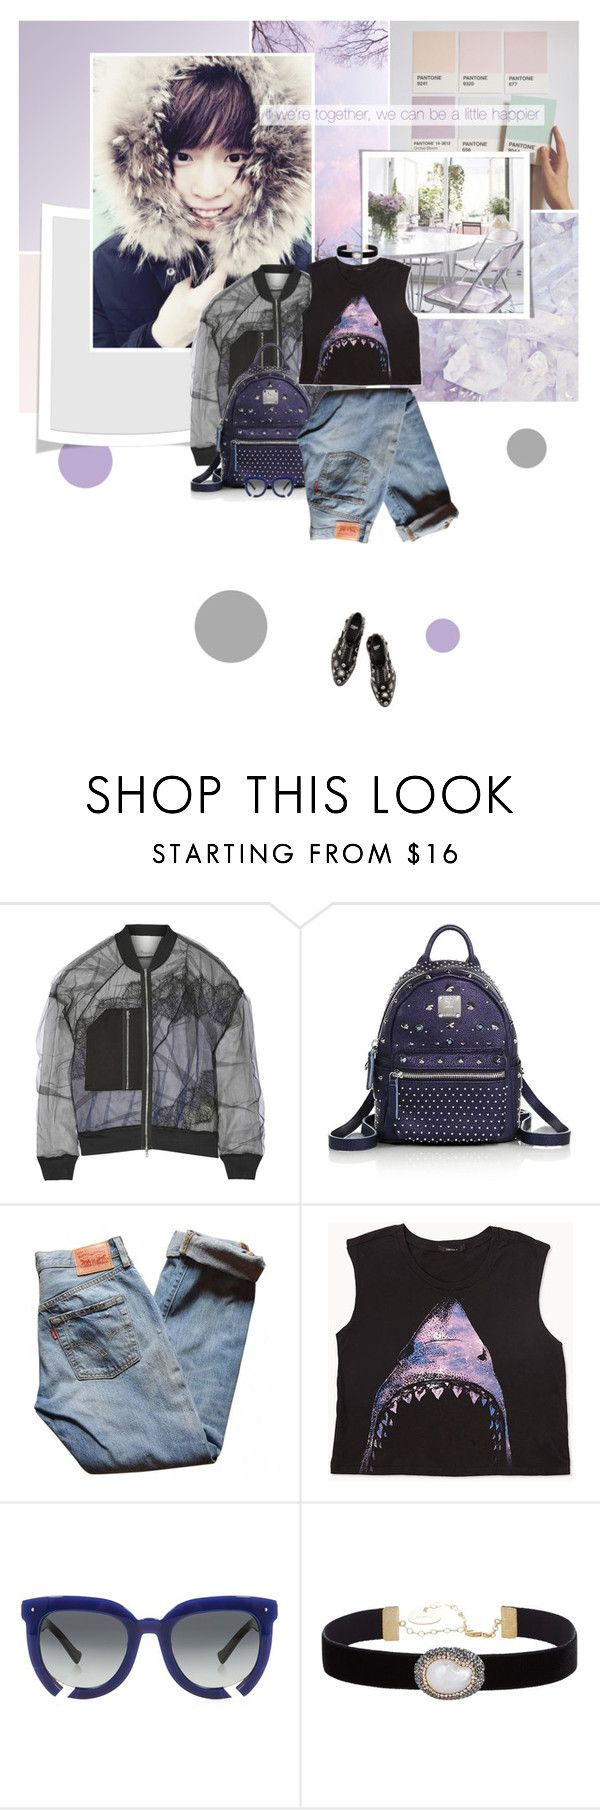 """Without You"" by bibibaubau ❤ liked on Polyvore featuring 3.1 Phillip Lim, MCM, Levi's, Forever 21, Grey Ant, Soru Jewellery and Toga"